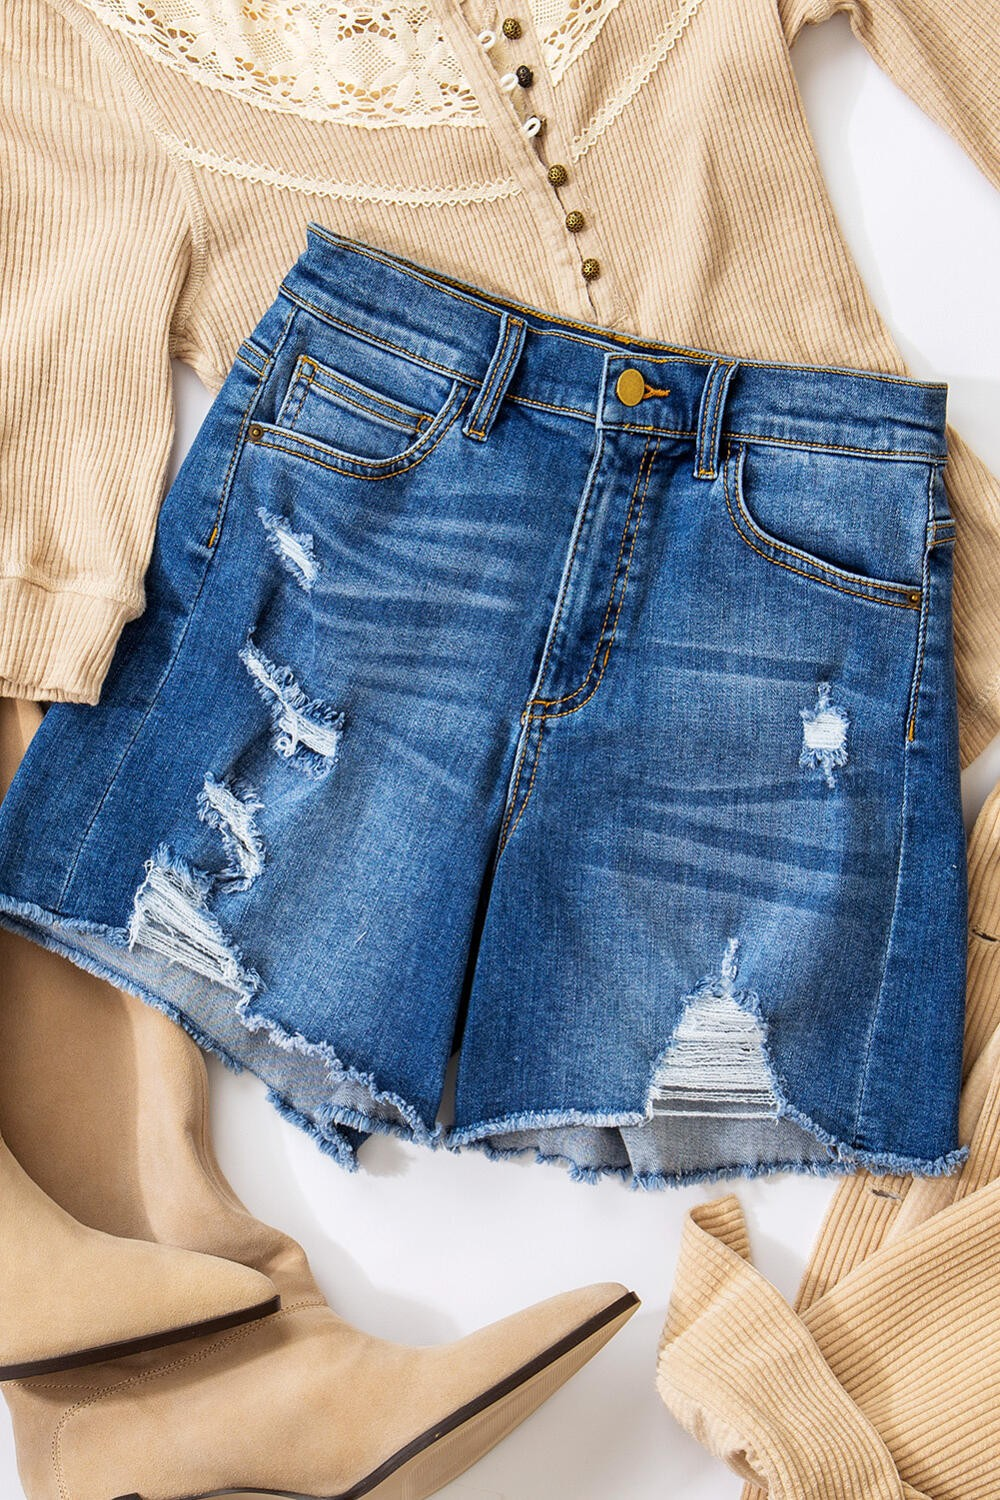 Wear Your Denim Shorts